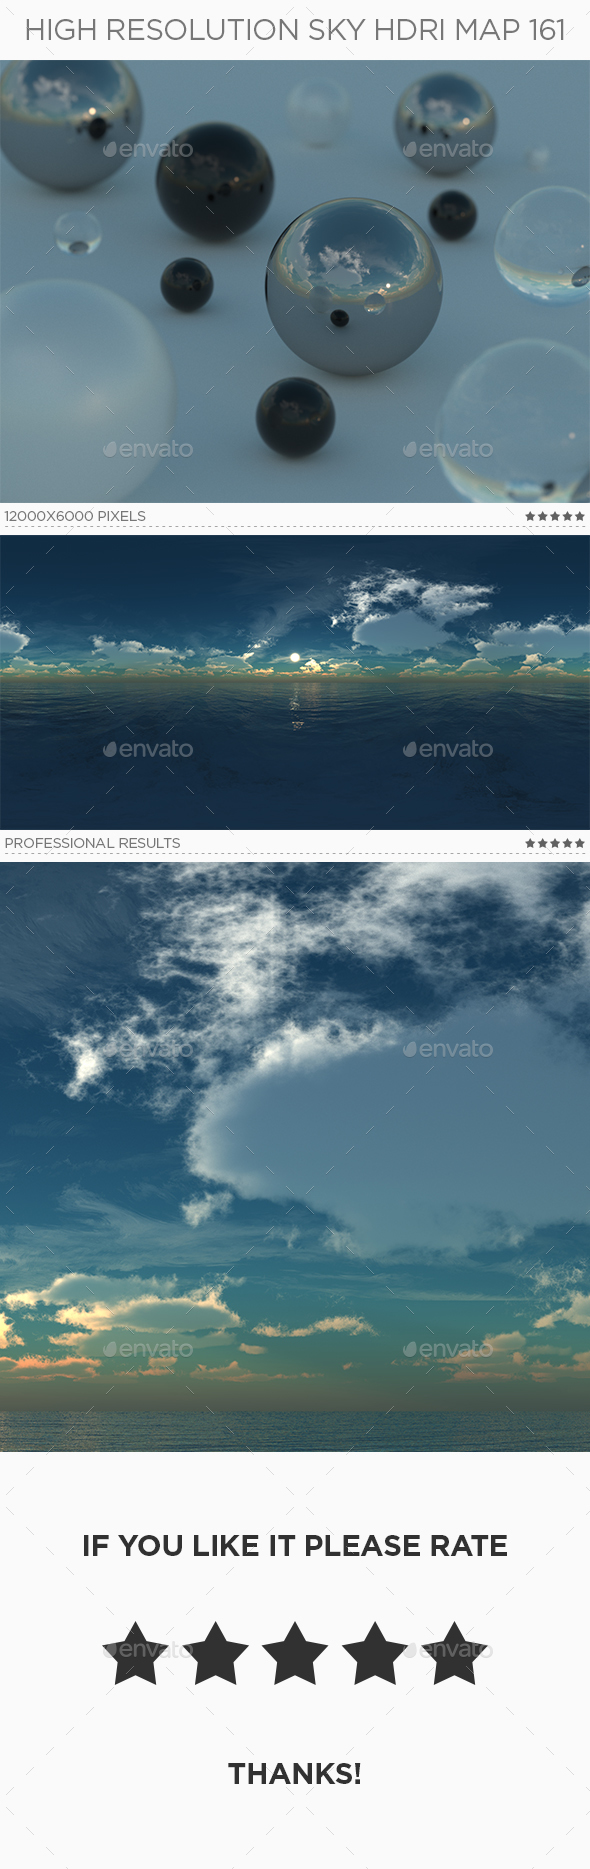 High Resolution Sky HDRi Map 161 - 3DOcean Item for Sale